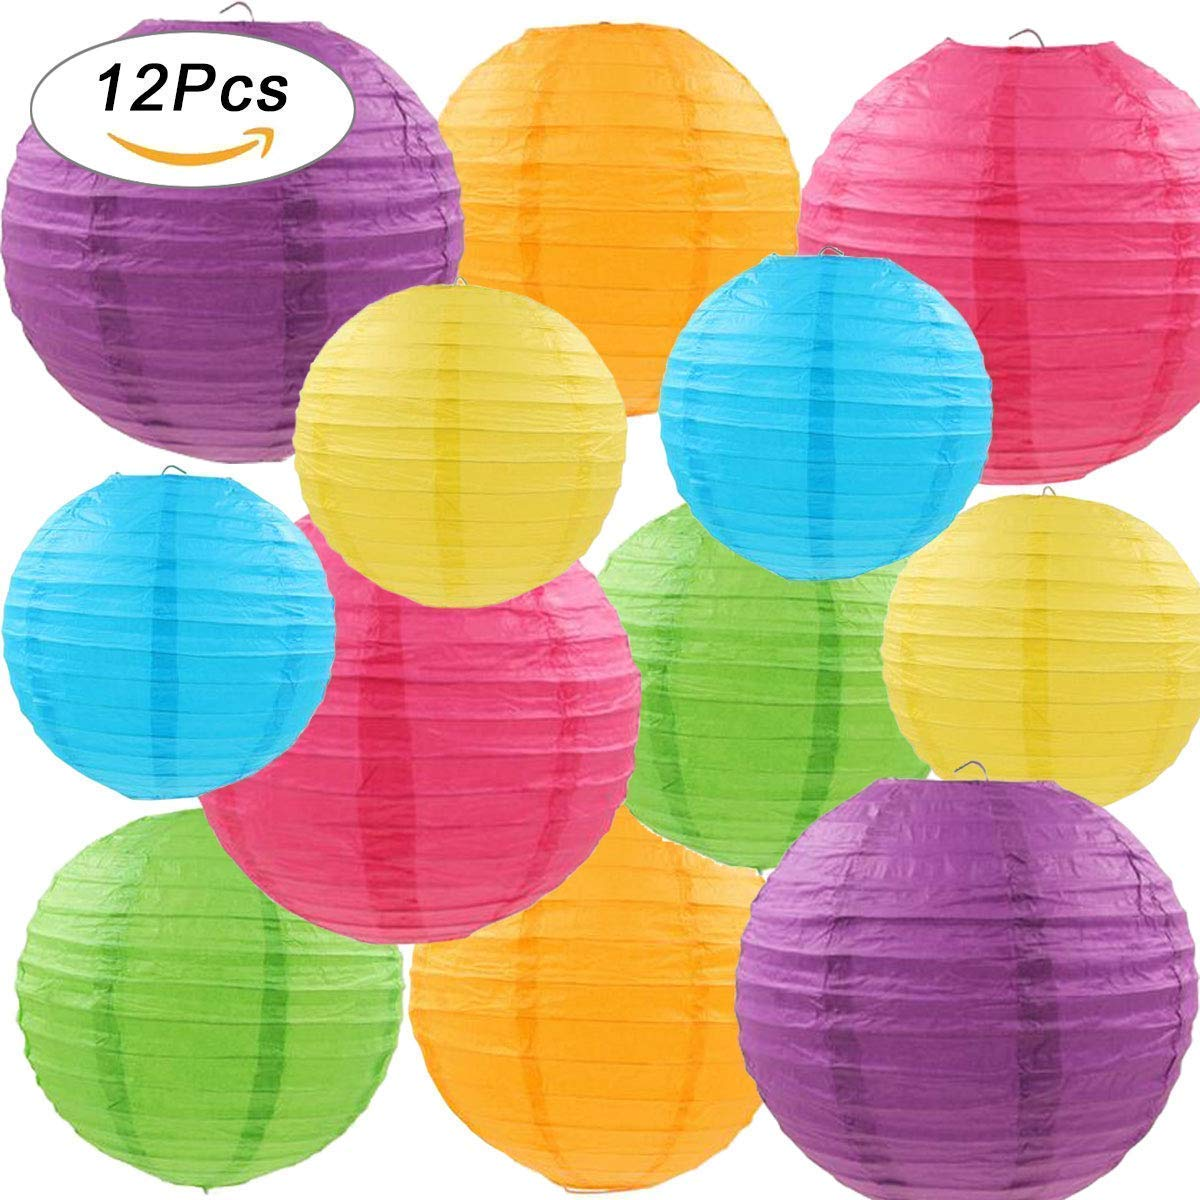 12 Pcs Colorful Paper Lanterns with Assorted Colors and Sizes Paper Lanterns Decorative,Chinese Paper Hanging Decorations Ball Lanterns Lamps for Home Decor, Parties, and Weddings Libershine